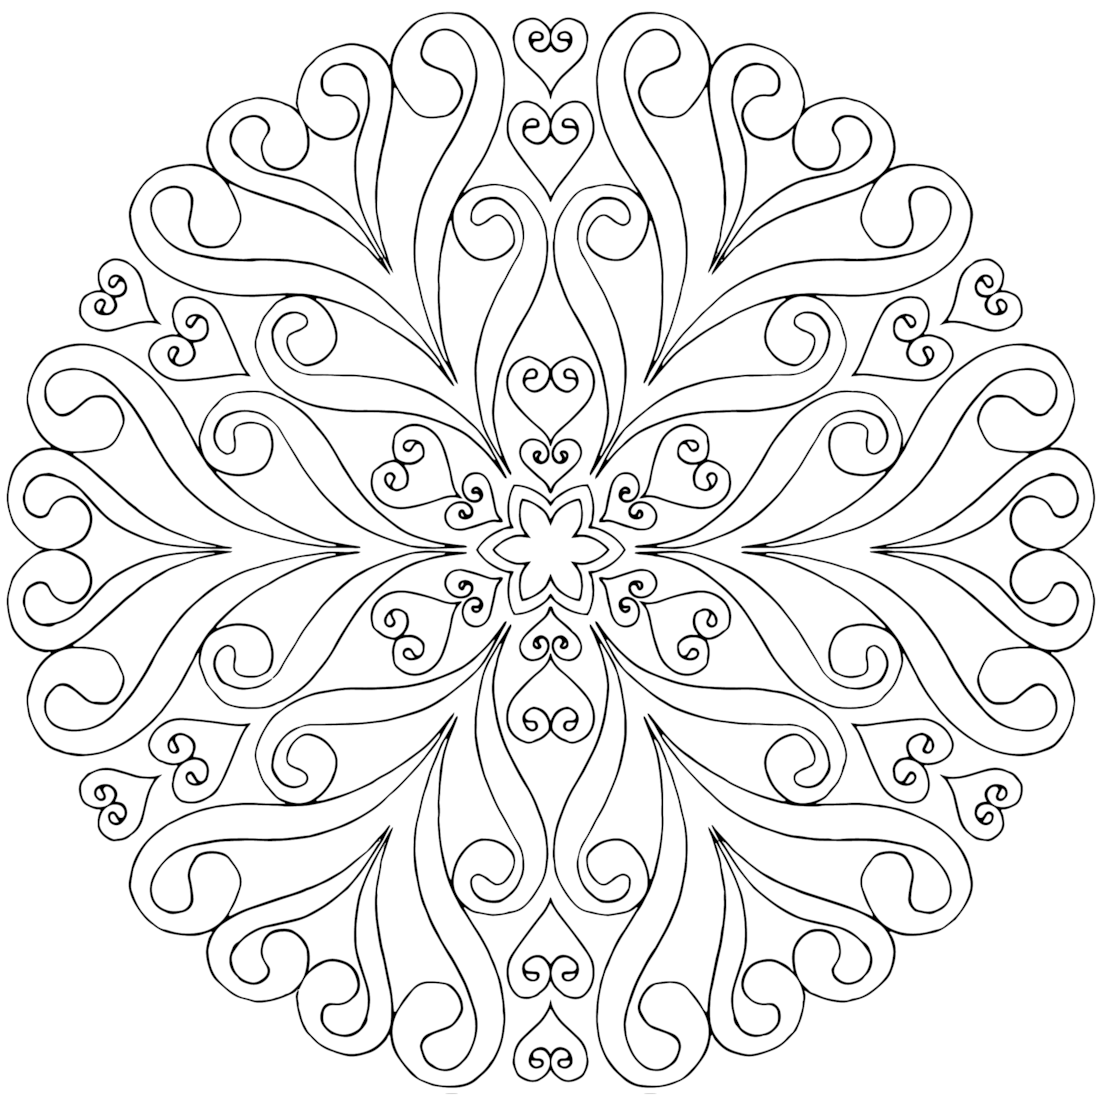 Pin by Lizet Barokas Koldan on Mandala | Mandala coloring pages ...